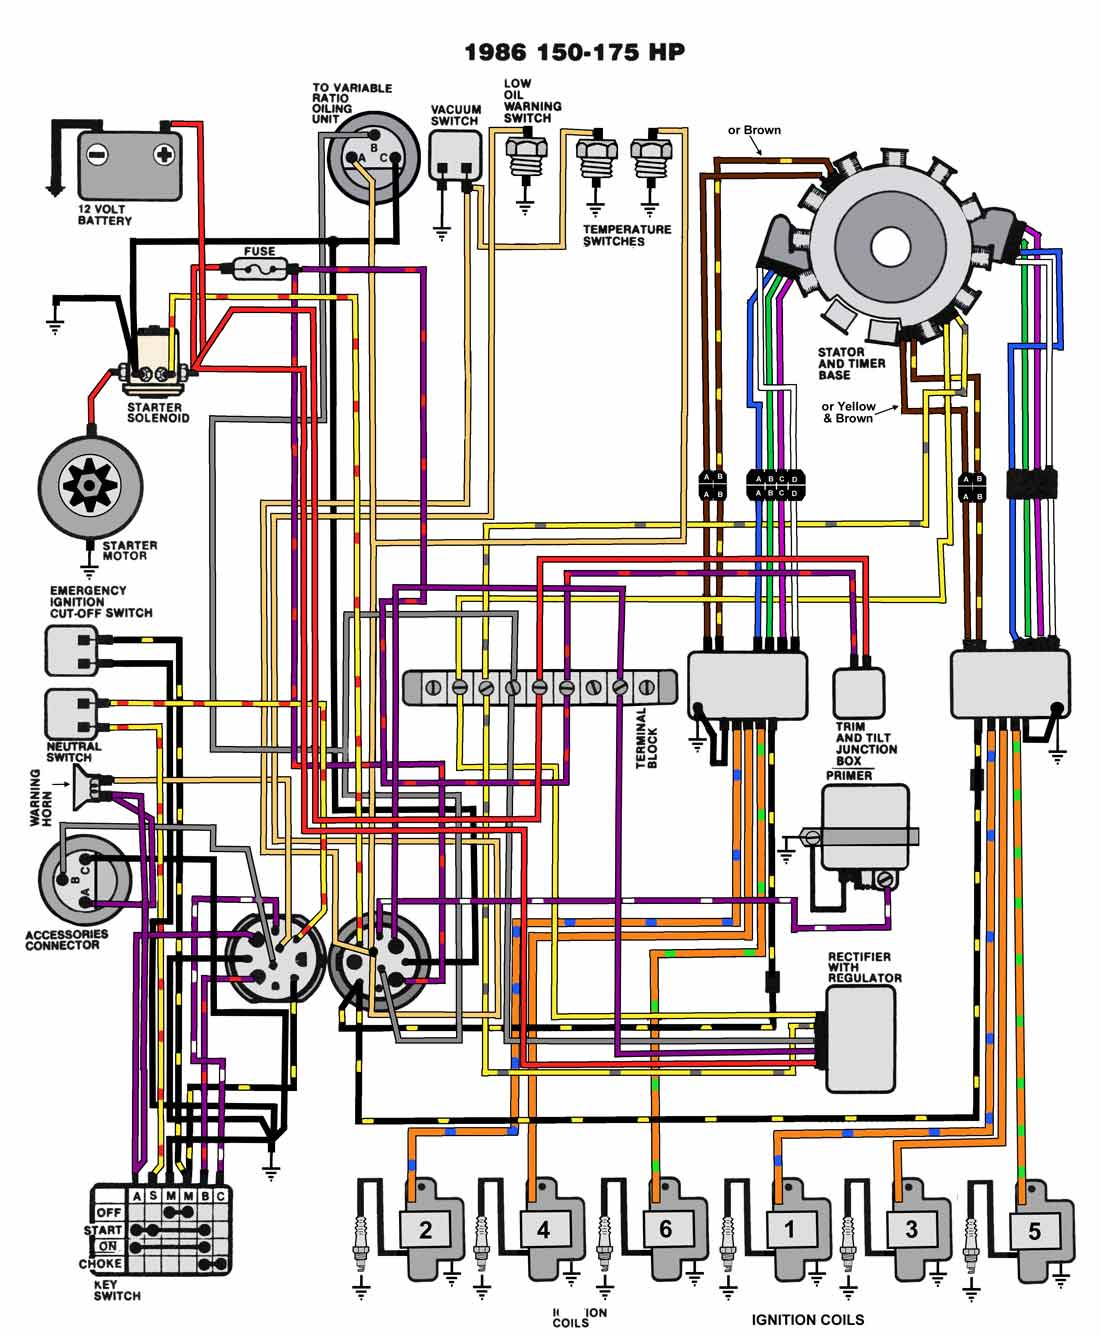 1986_150_175 mastertech marine evinrude johnson outboard wiring diagrams 1981 evinrude 35 hp wiring diagram at virtualis.co